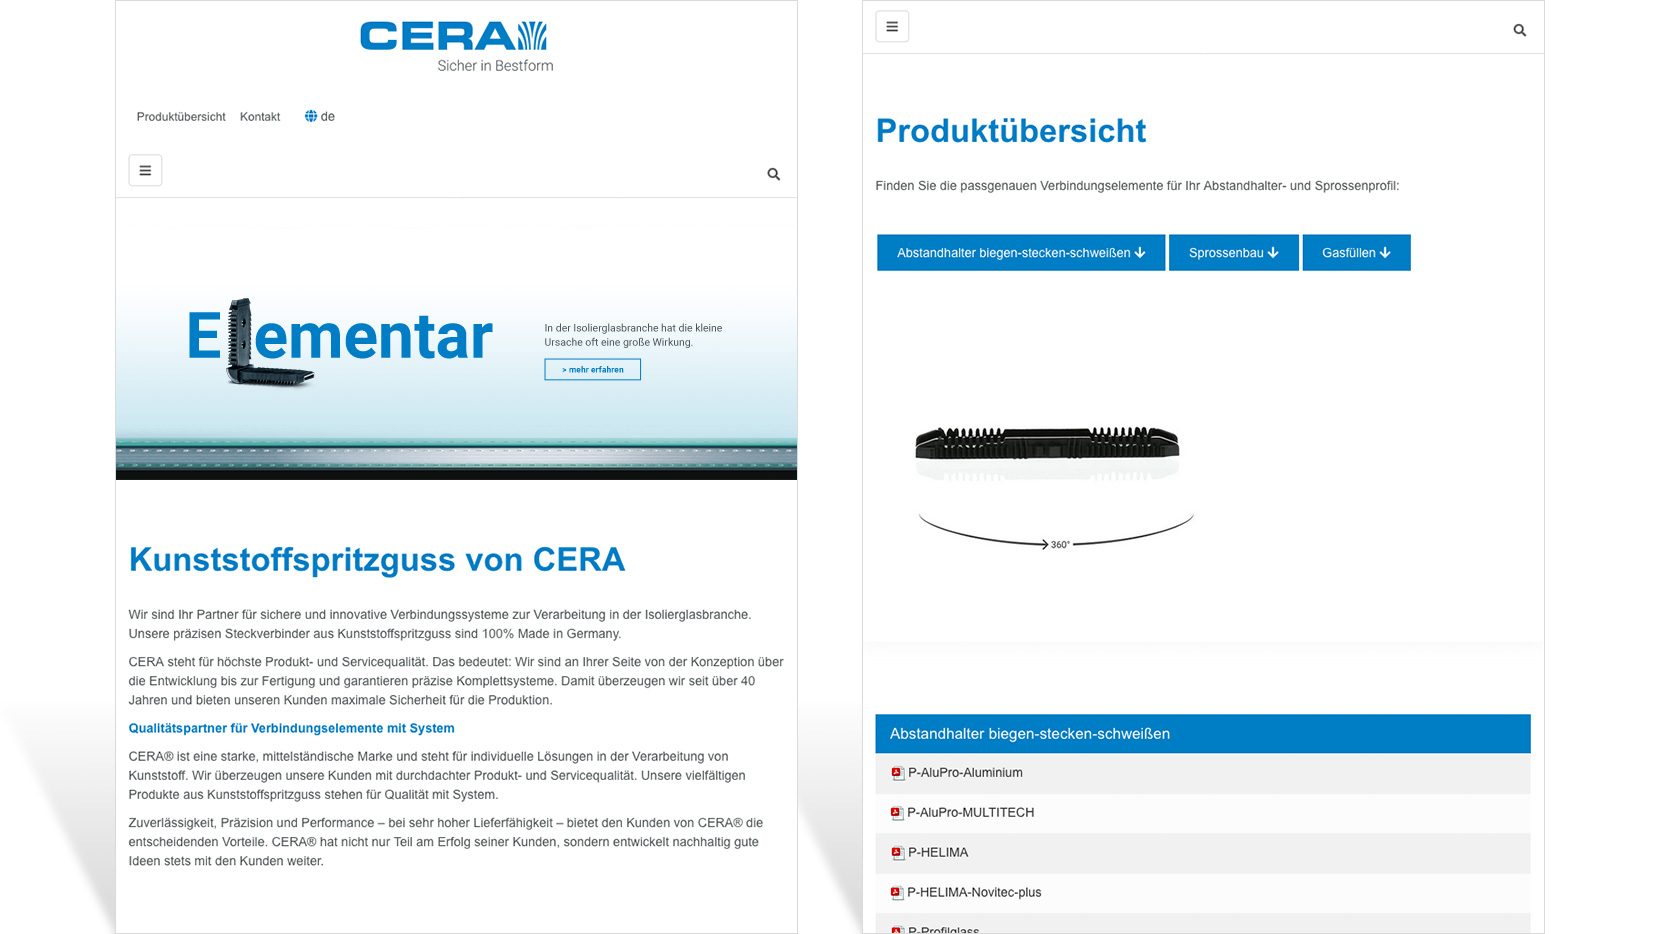 Cera Screendesign Tablet